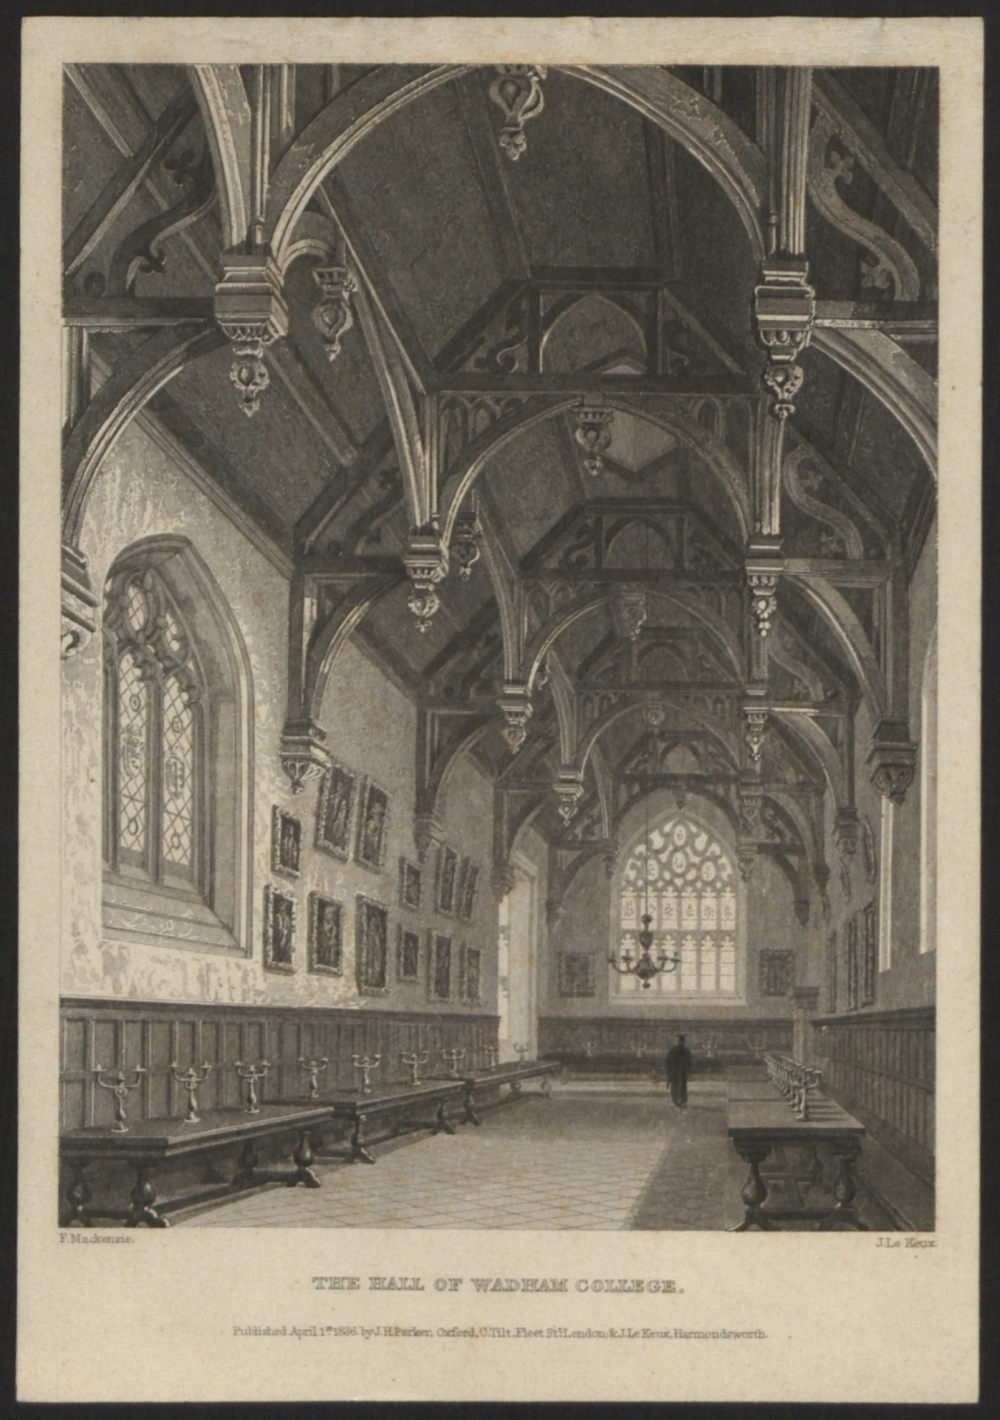 preview image for Print (Engraving, Etching) of The Hall of Wadham College, by J. Le Keux after F. Mackenzie, Published by J.H. Parker, Oxford, C.Tilt,. J.Le Keux London, 1836